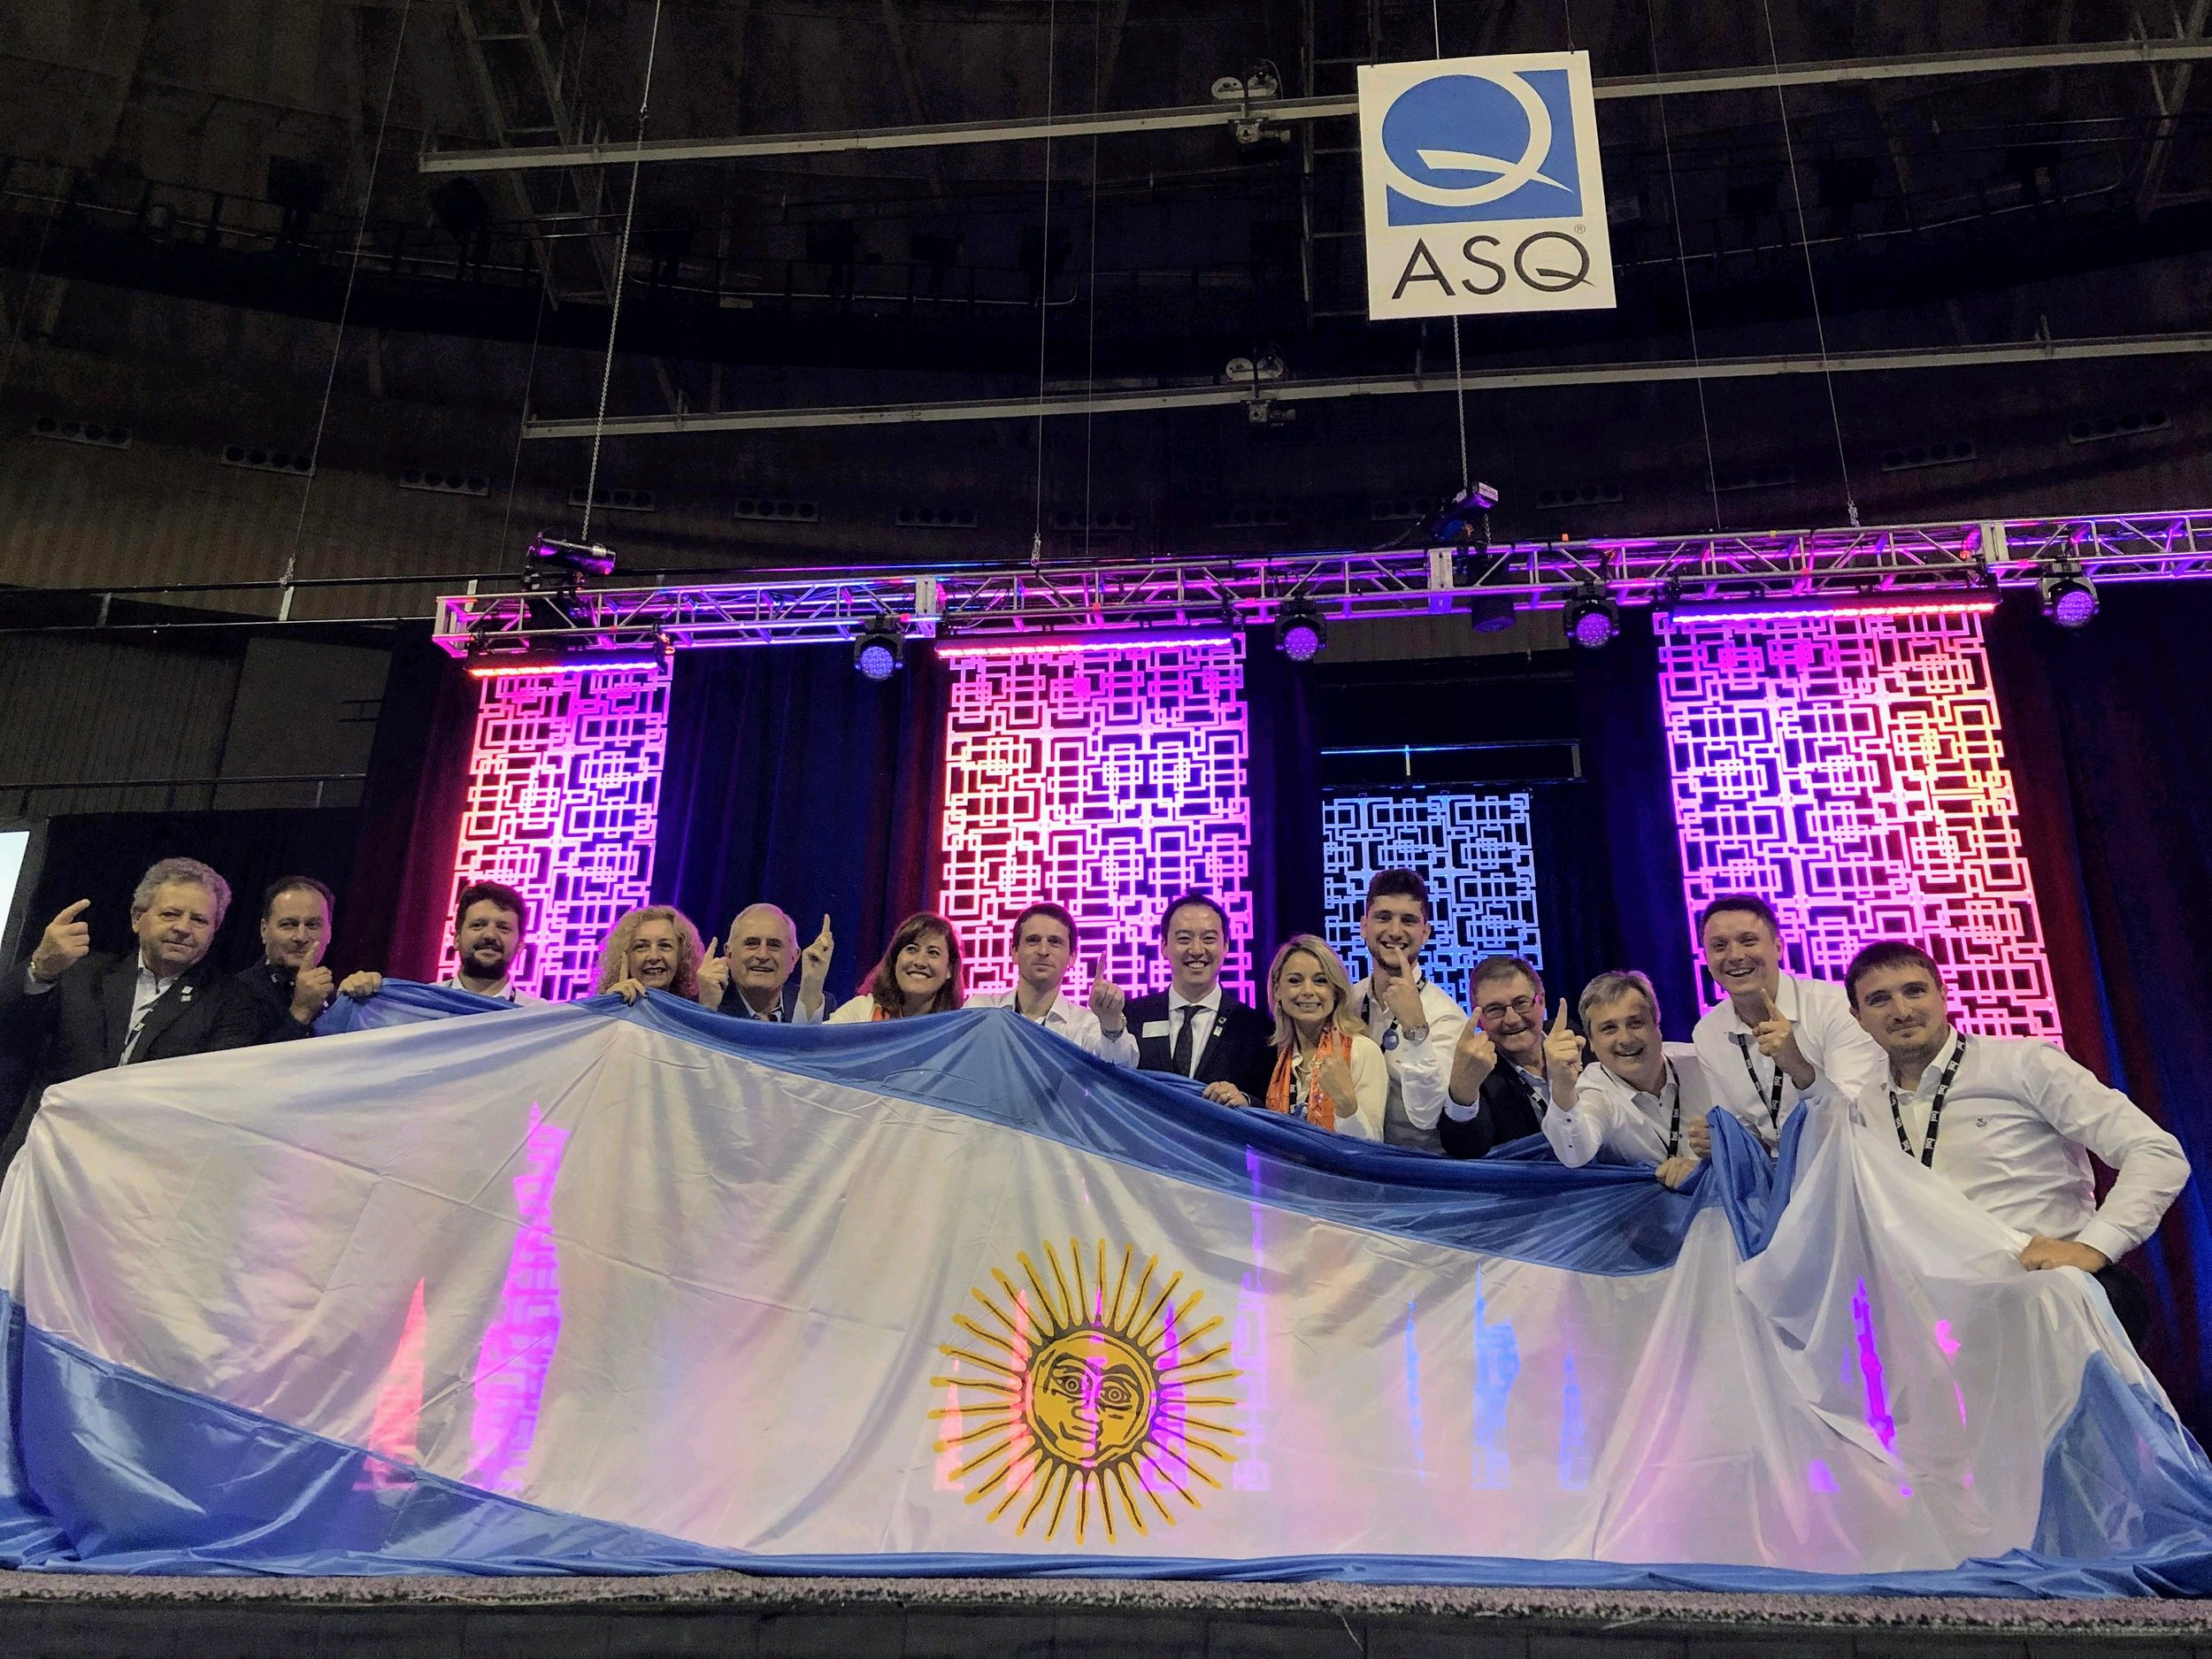 The Argentina team roaring their way onstage to be one of the teams placing Gold in the International Team Excellence Awards finals.